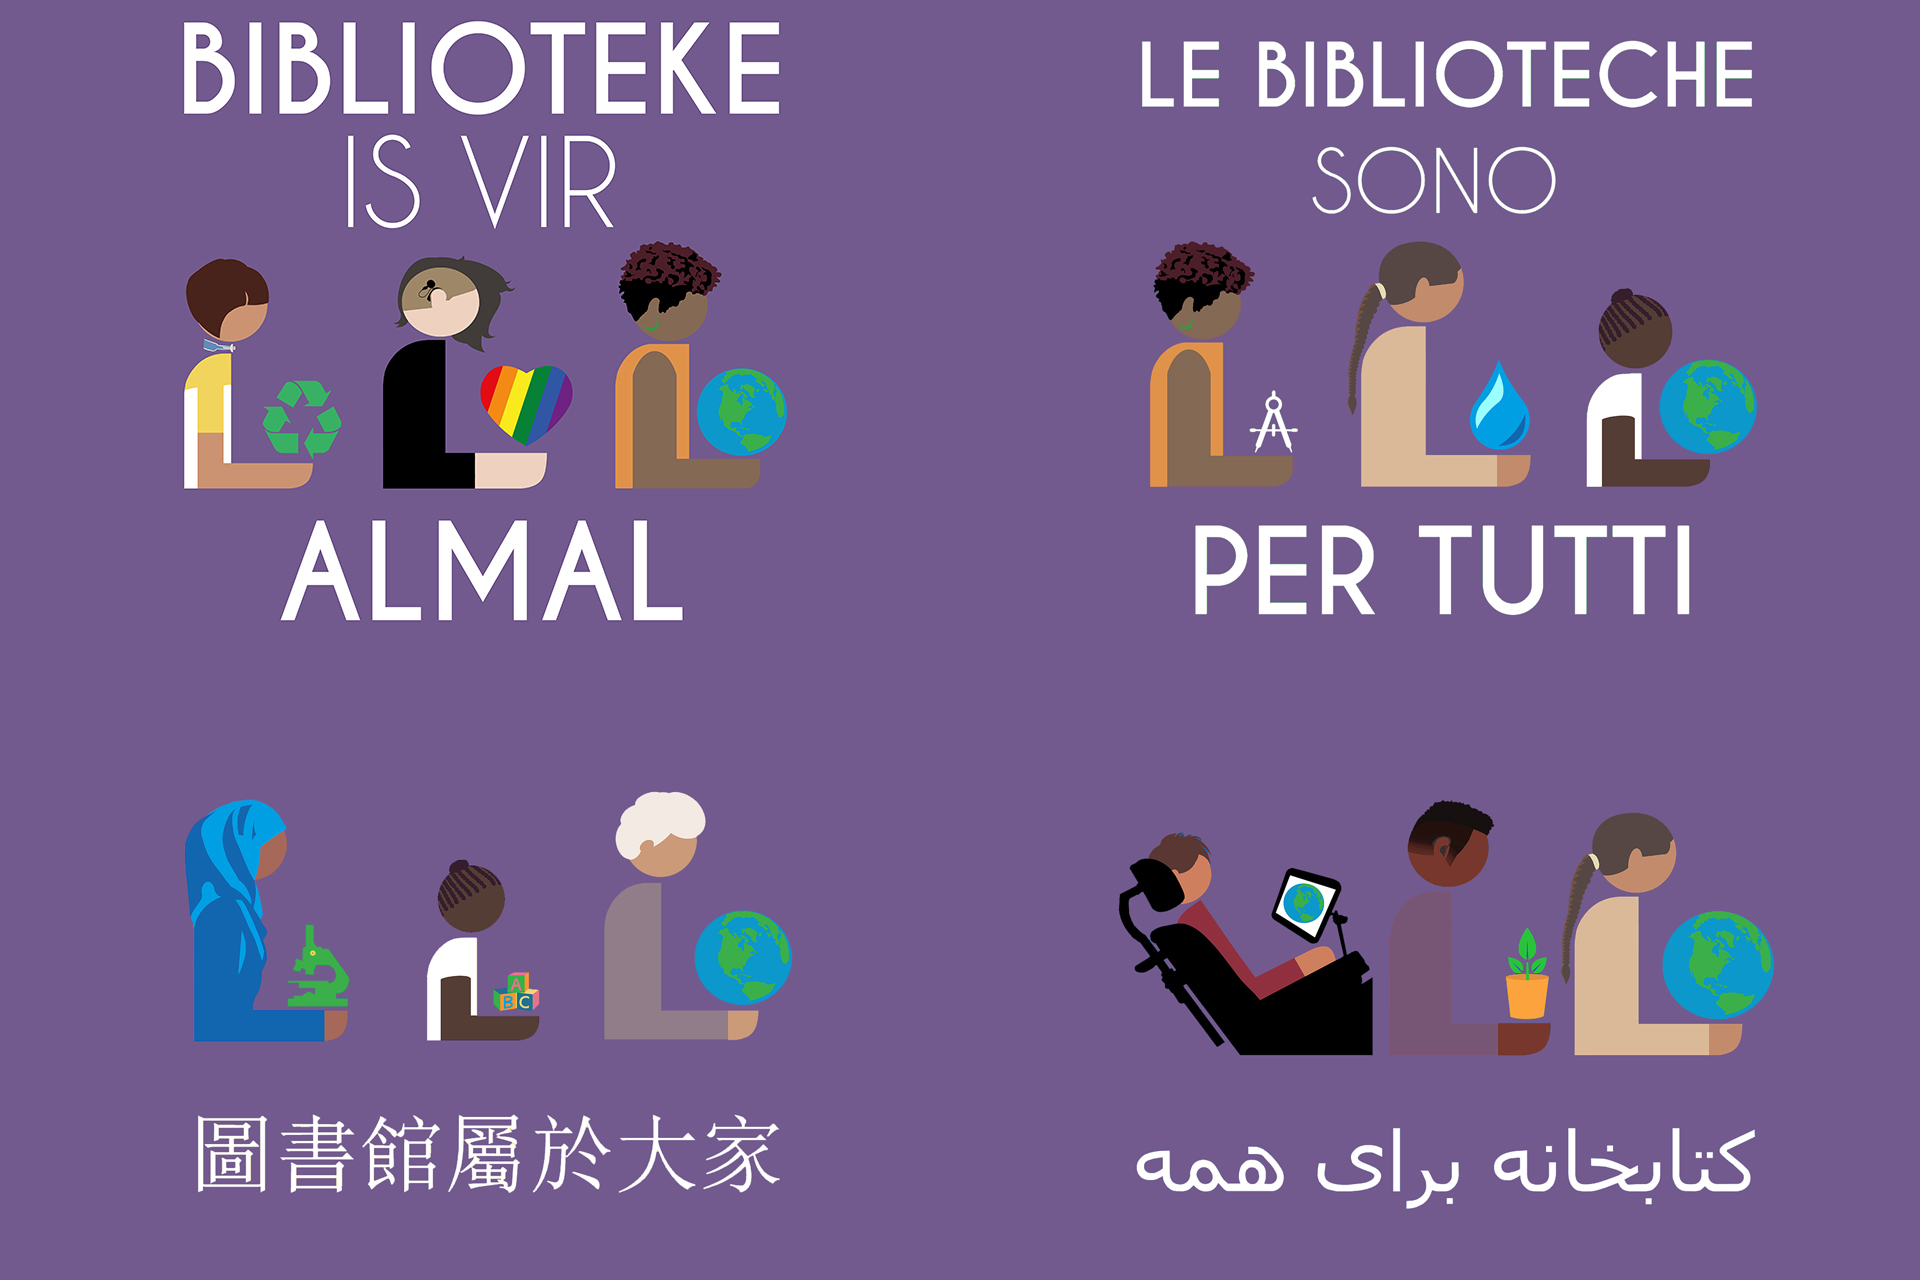 Libraries are for everyone in Afrikaans, Italian, Chinese, and Farsi.